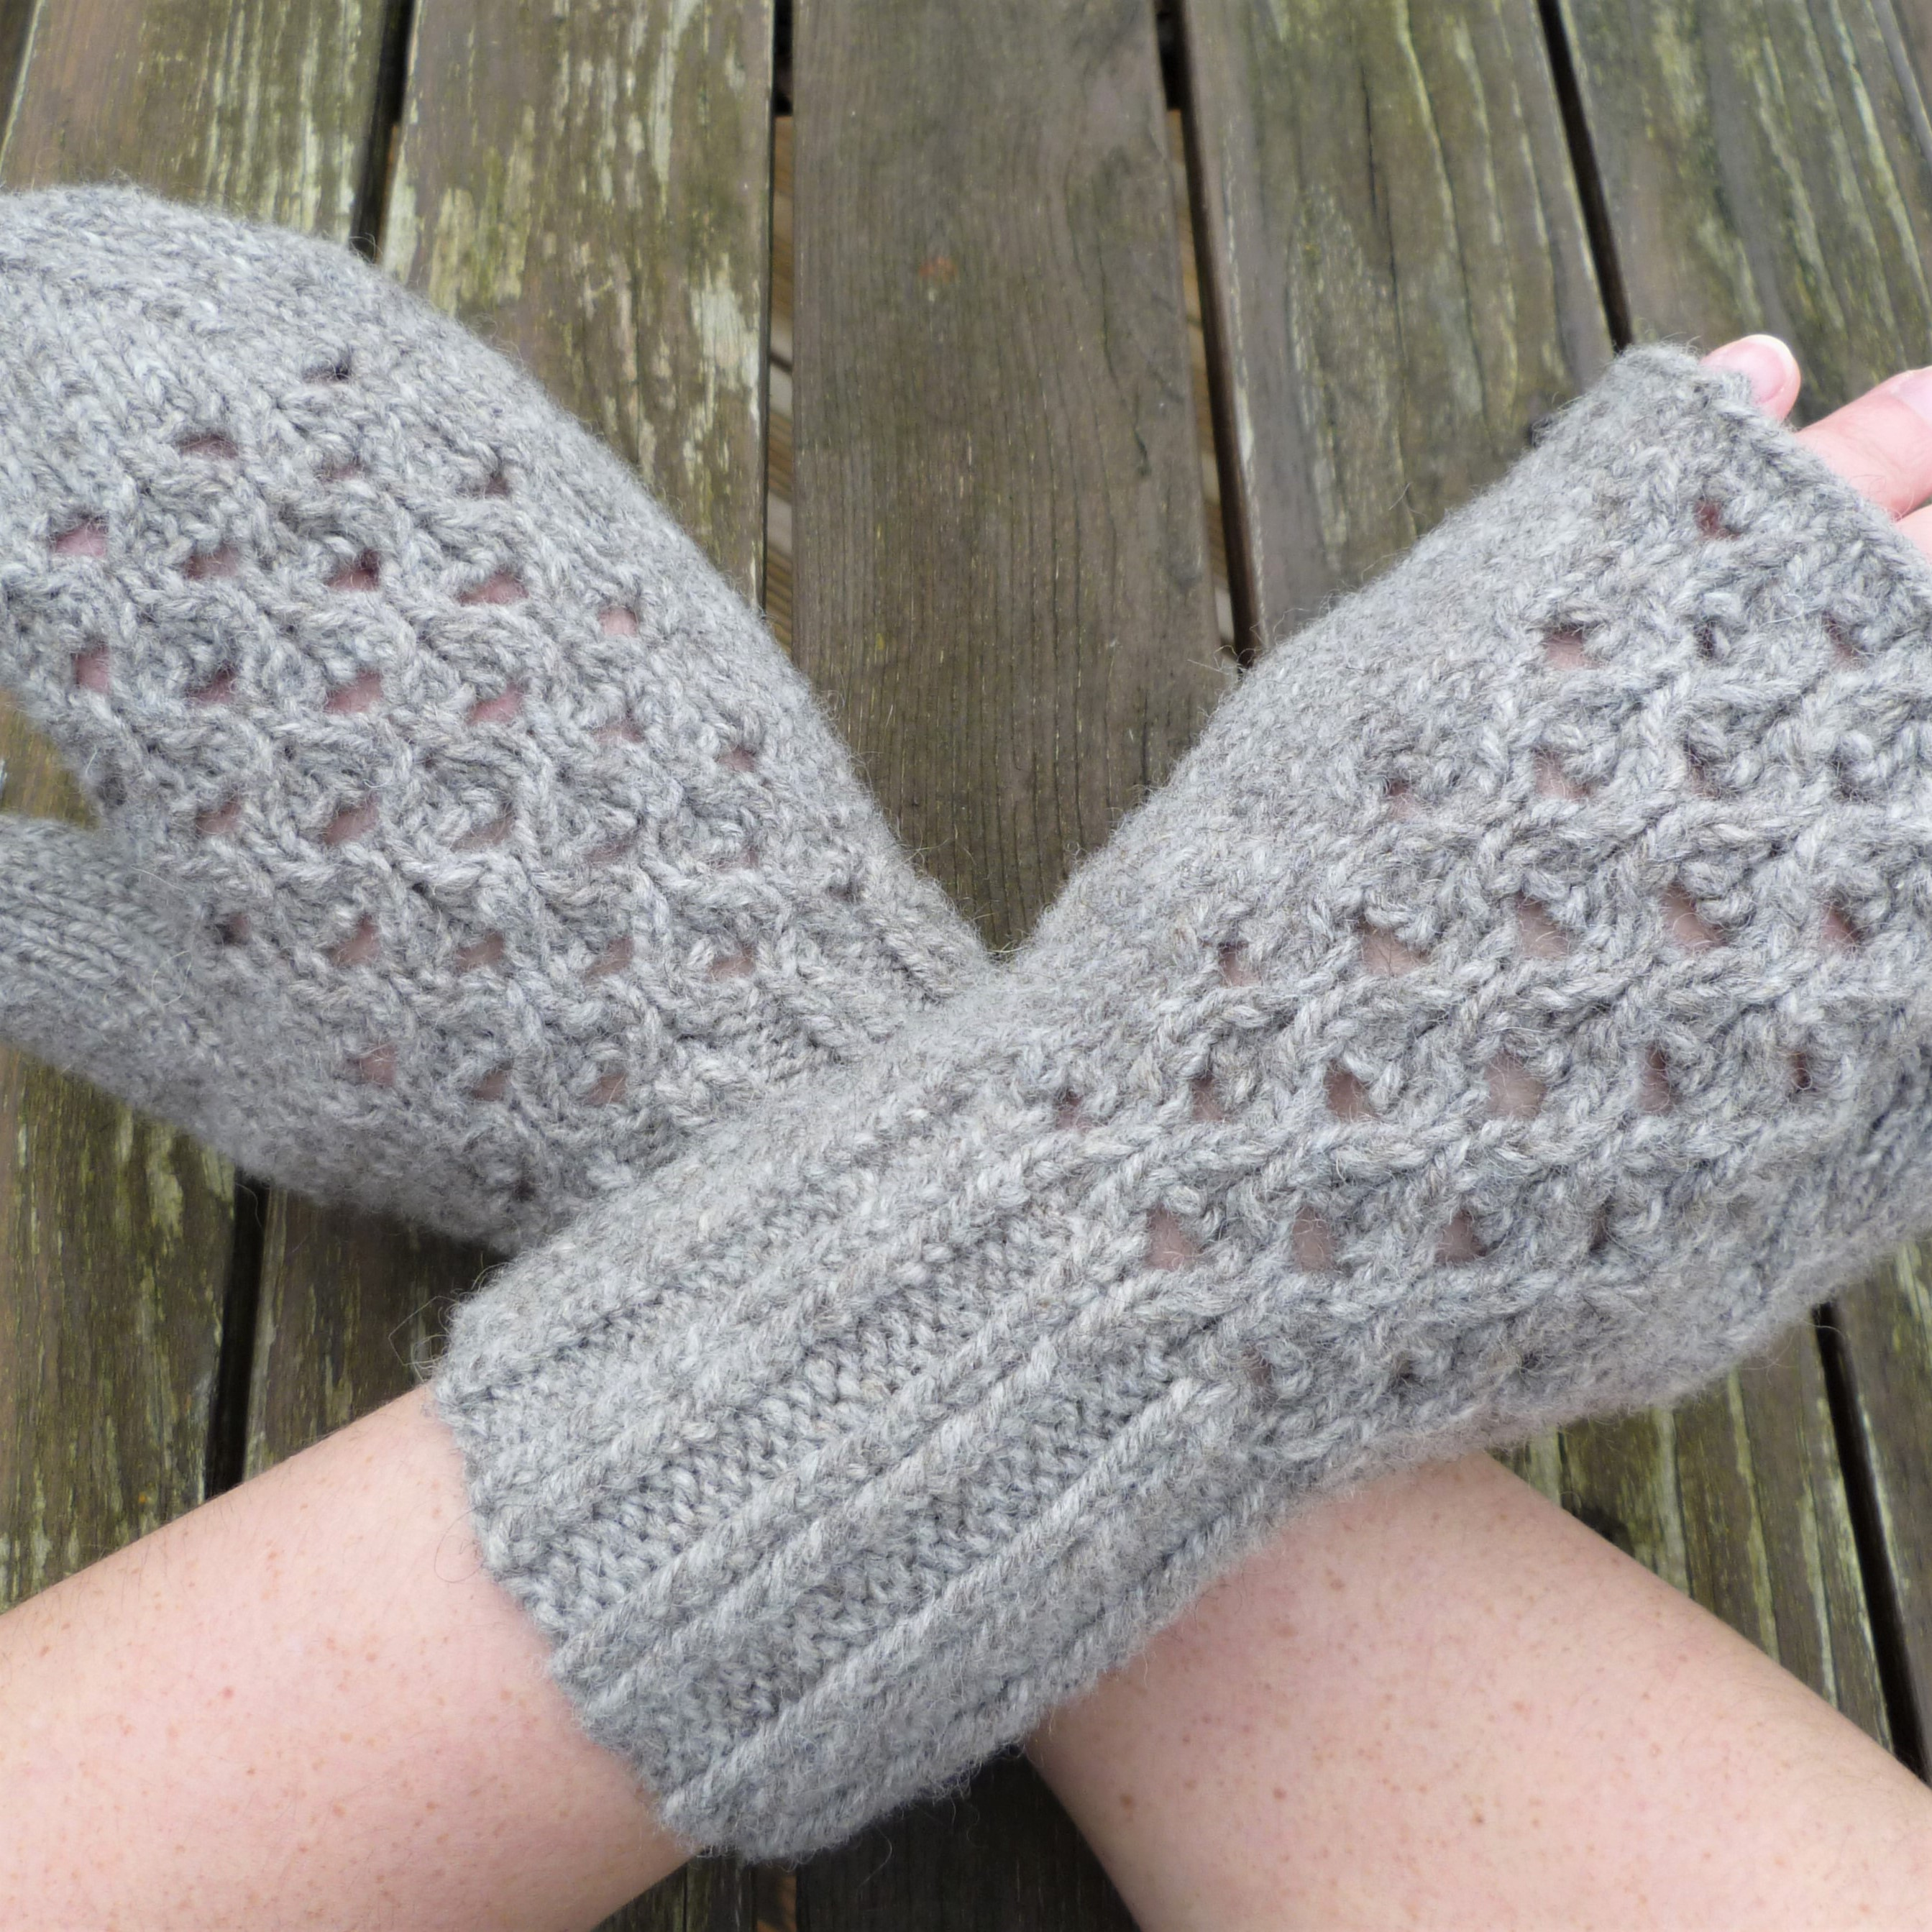 Lace mittens in grey British wool yarn. Pattern for full mitten and fingerless mitts in 3 adult sizes. Low vision version available.